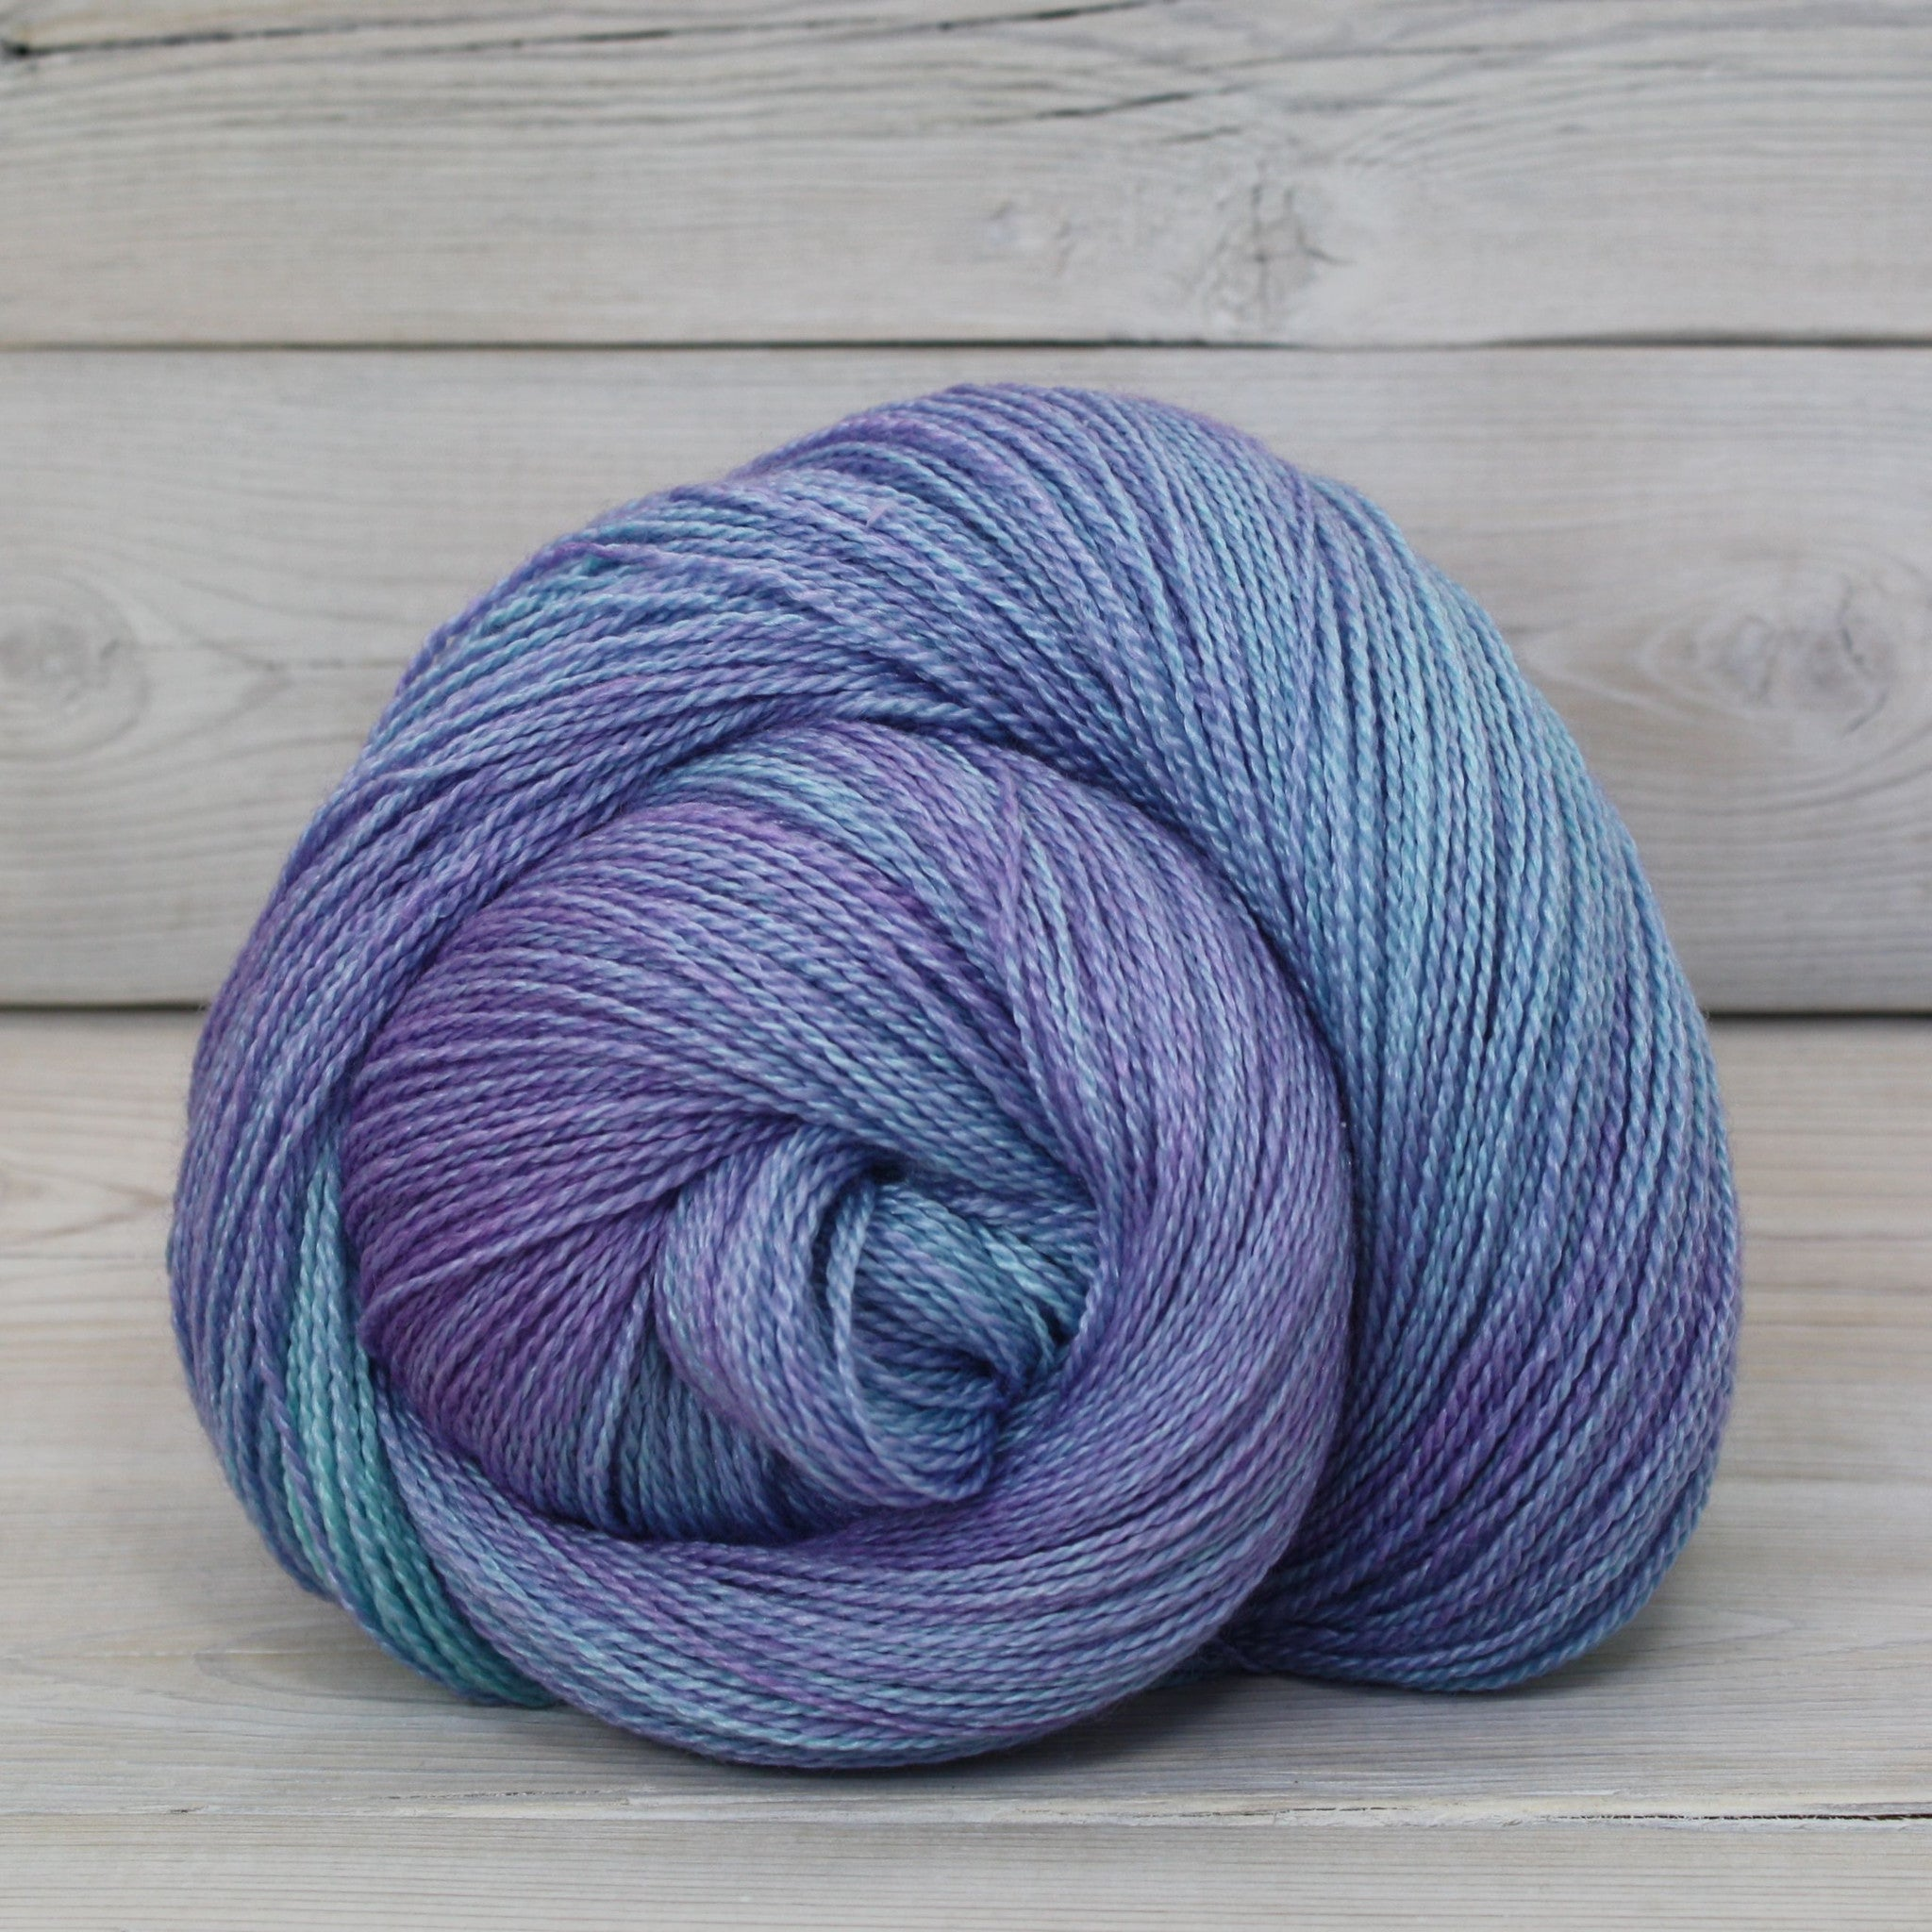 Luna Grey Fiber Arts Starbright Yarn | Colorway: Celestial